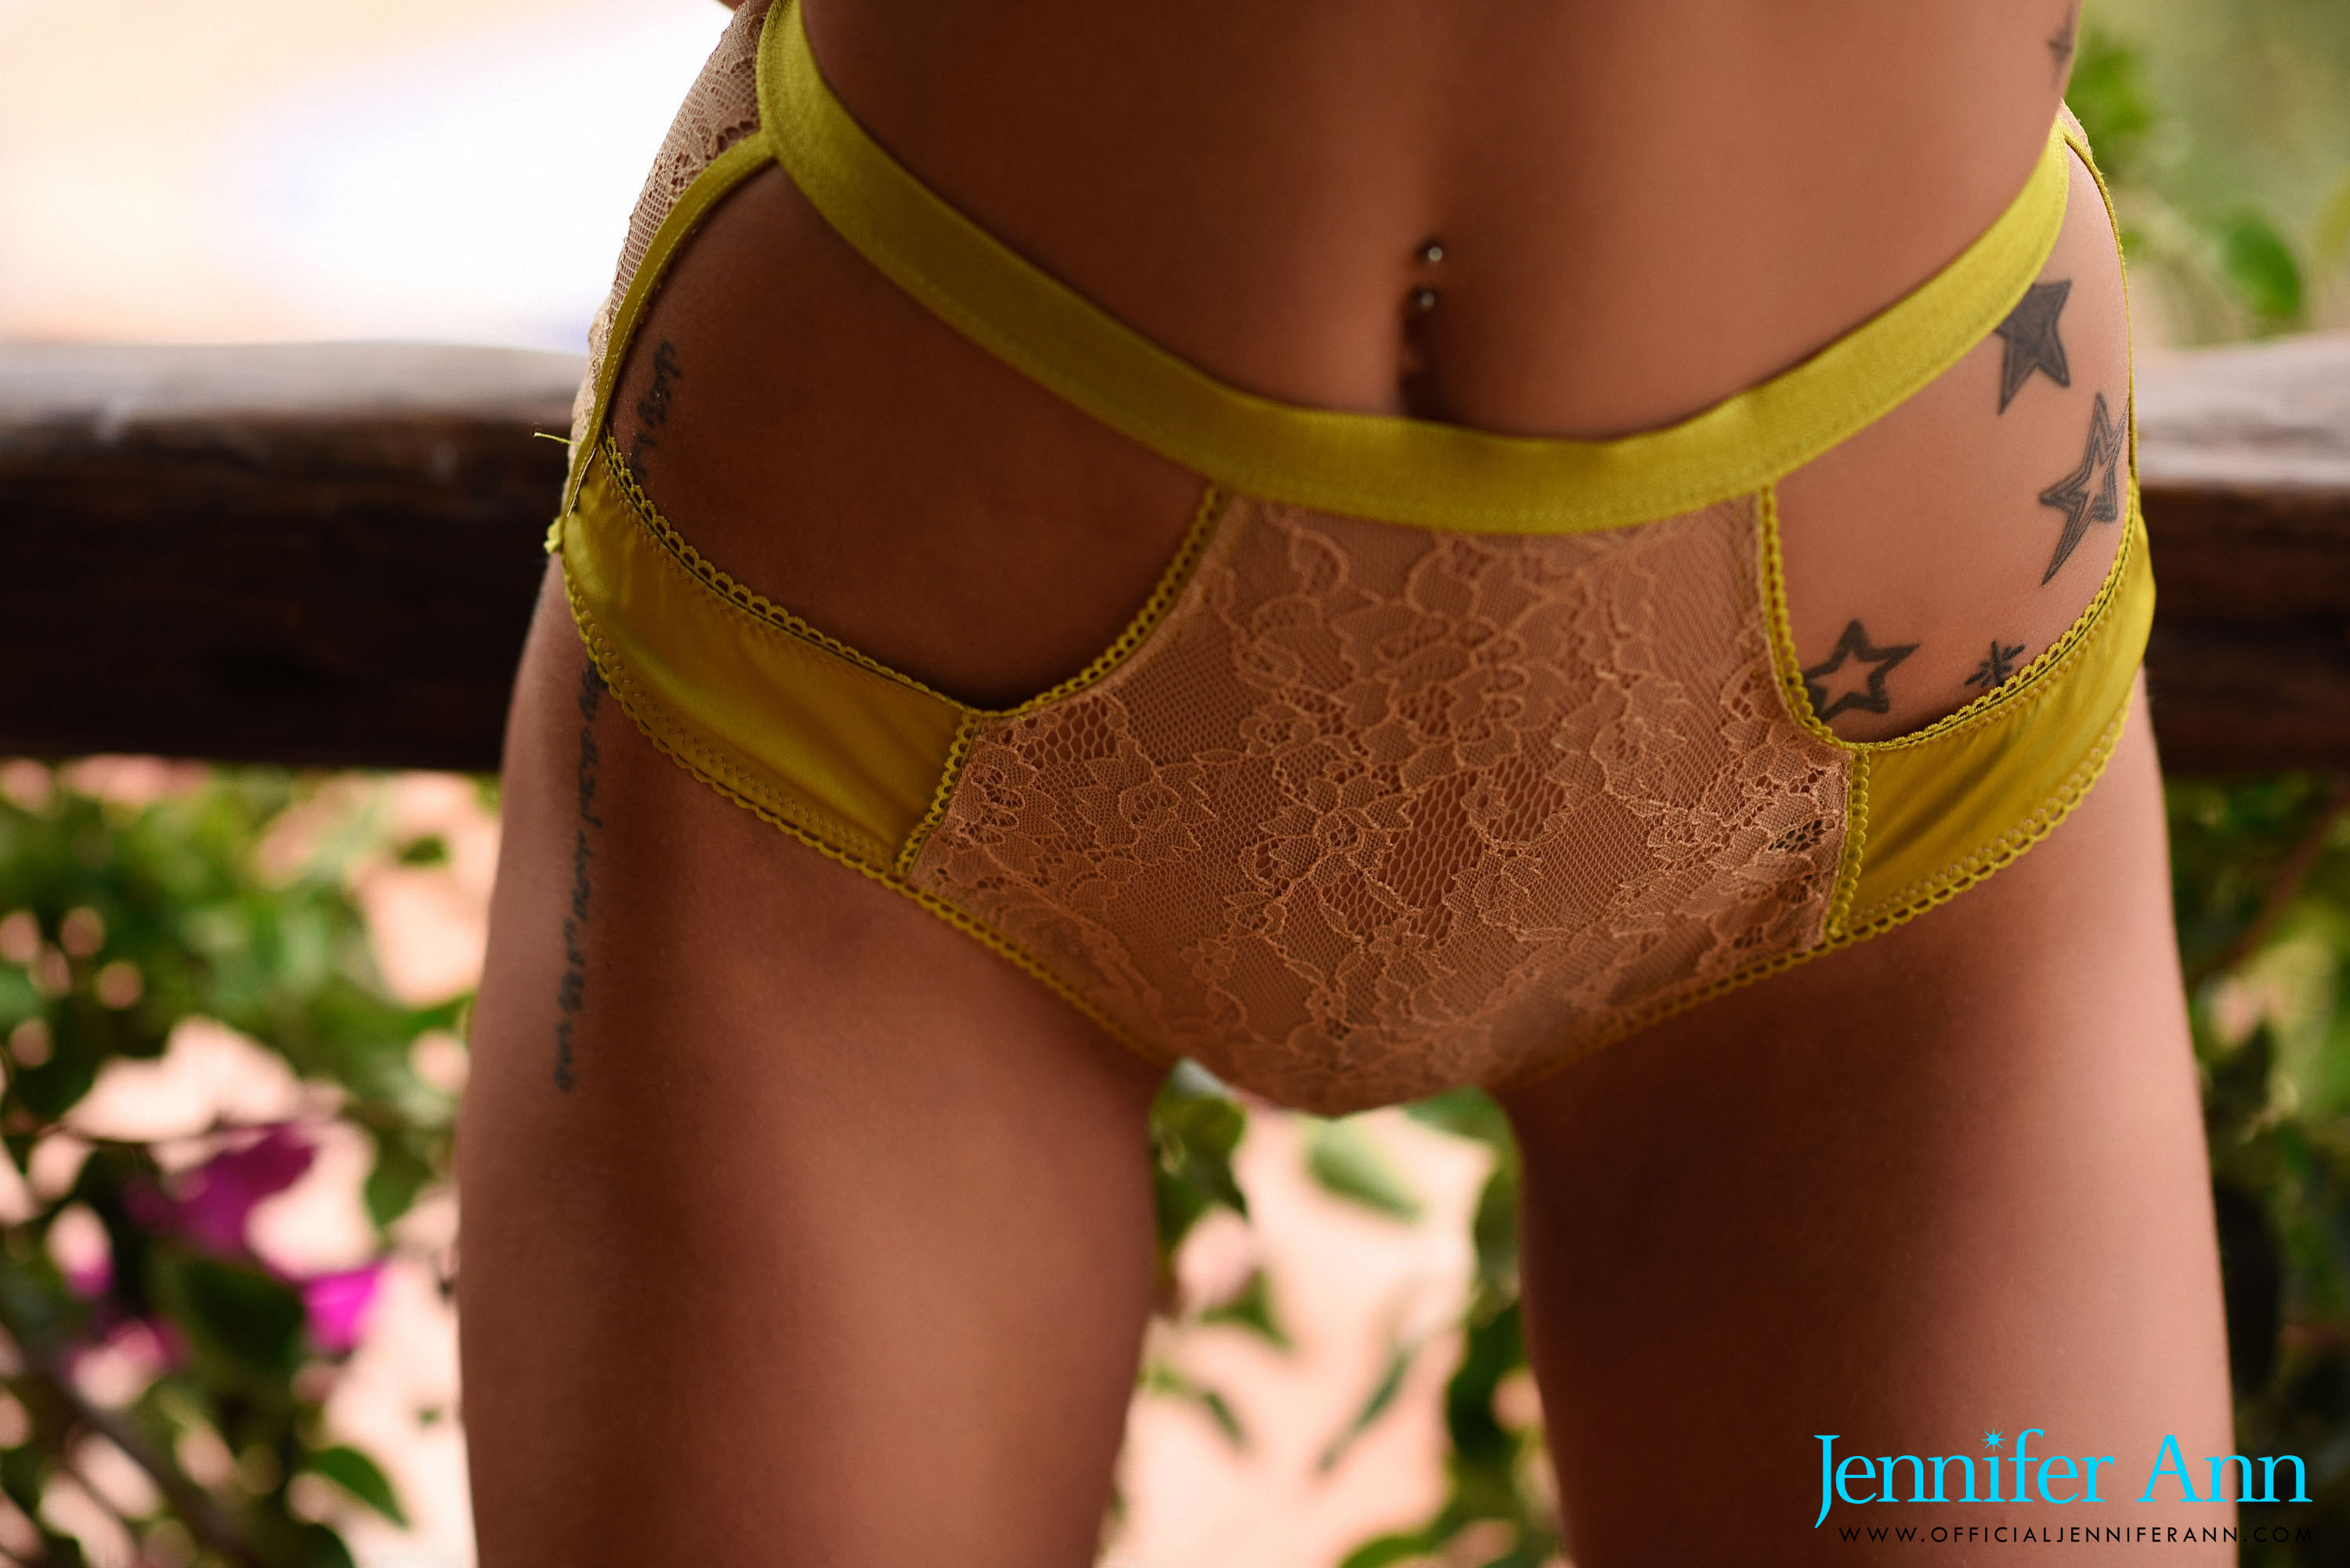 Jennifer Ann in sexy yellow lingerie